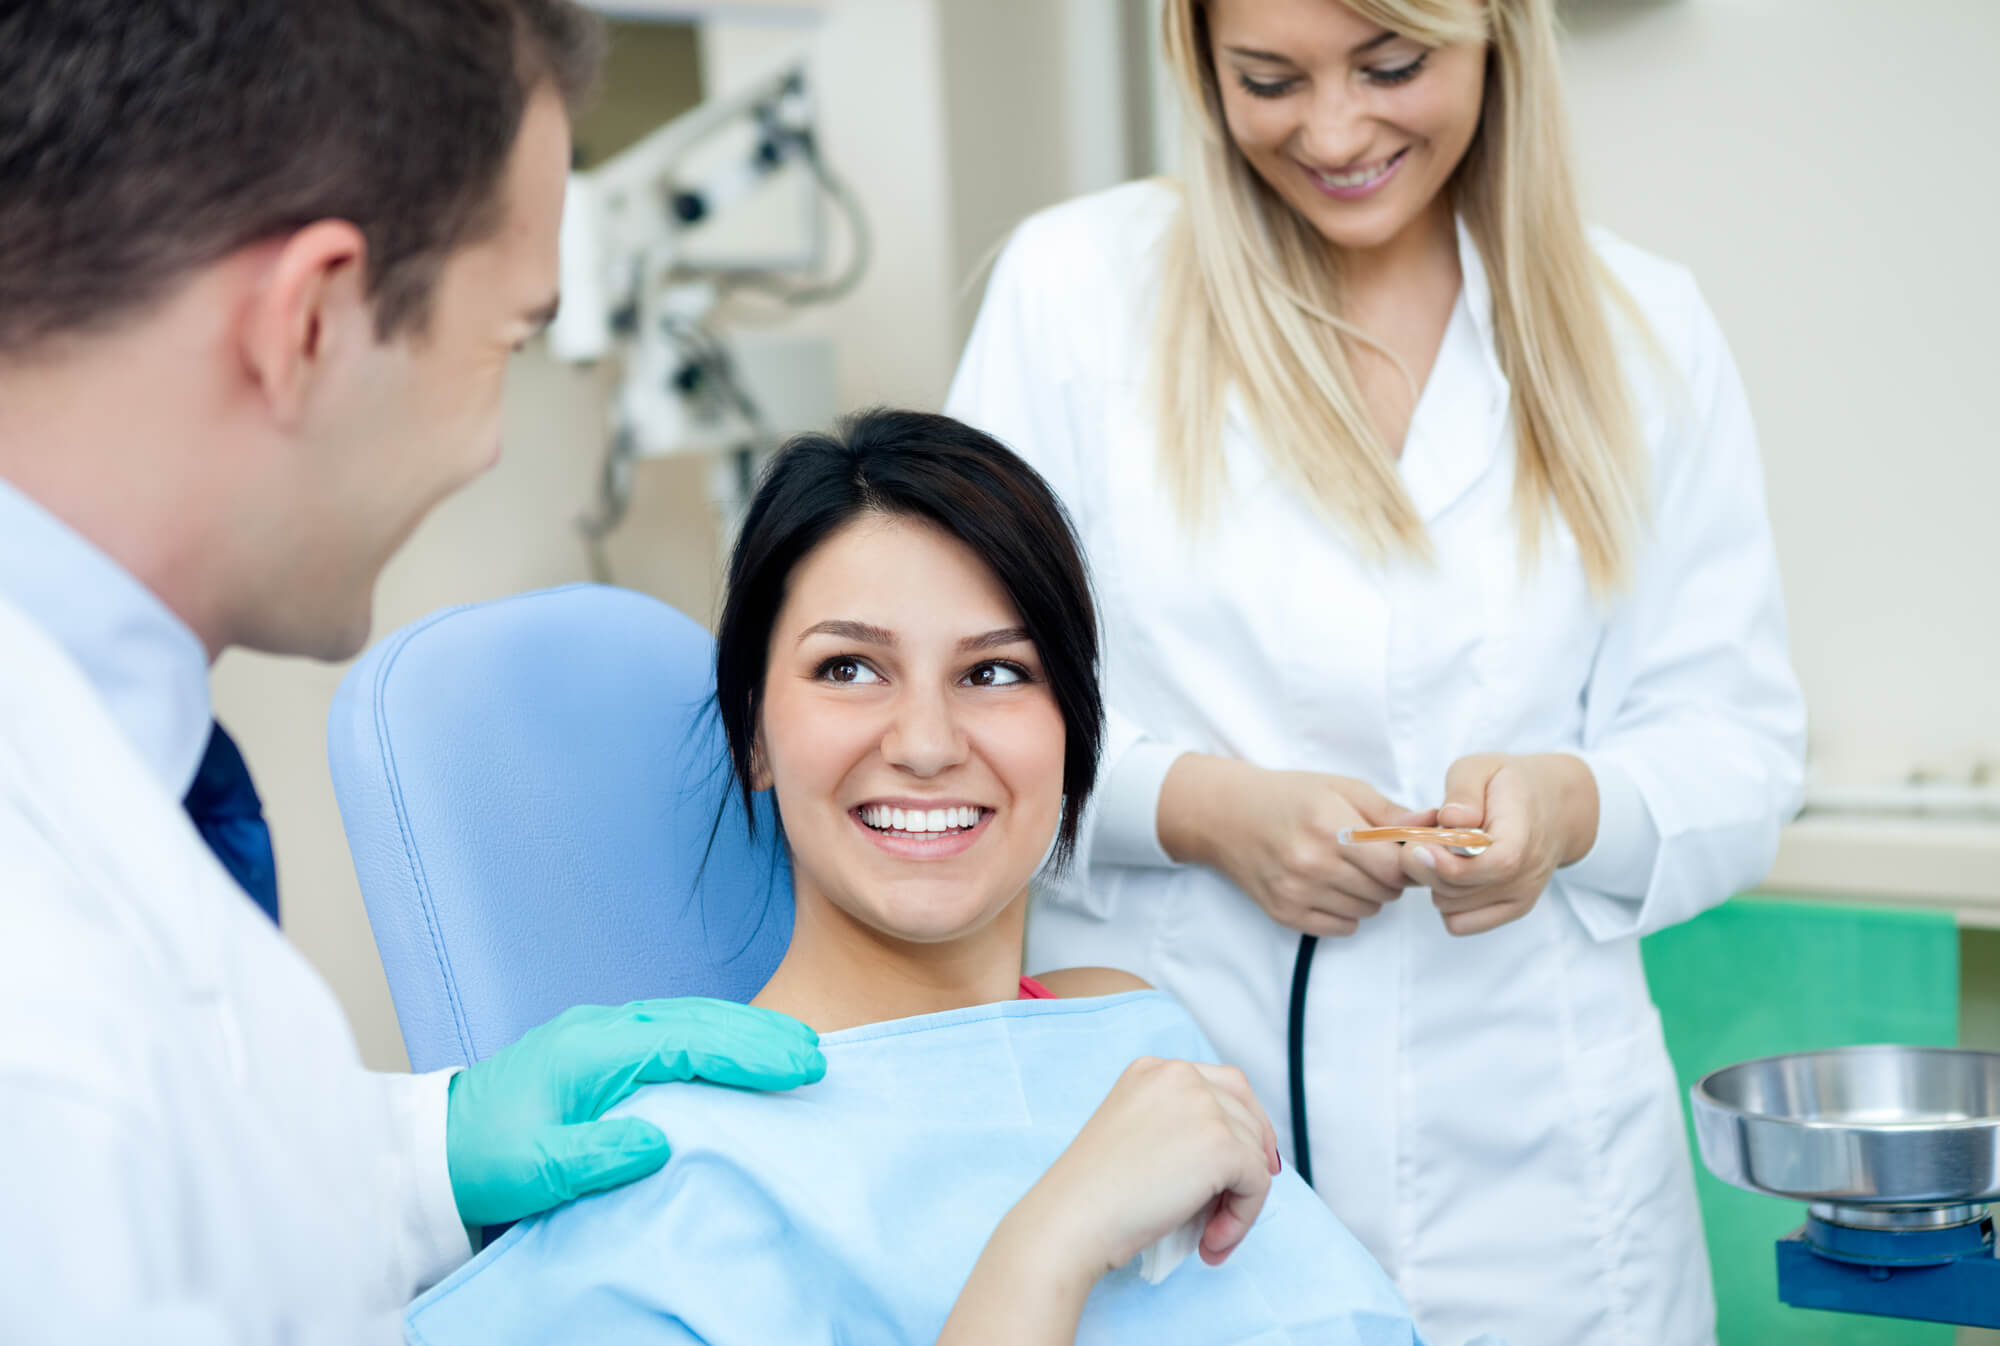 who offers an oak park dentist?